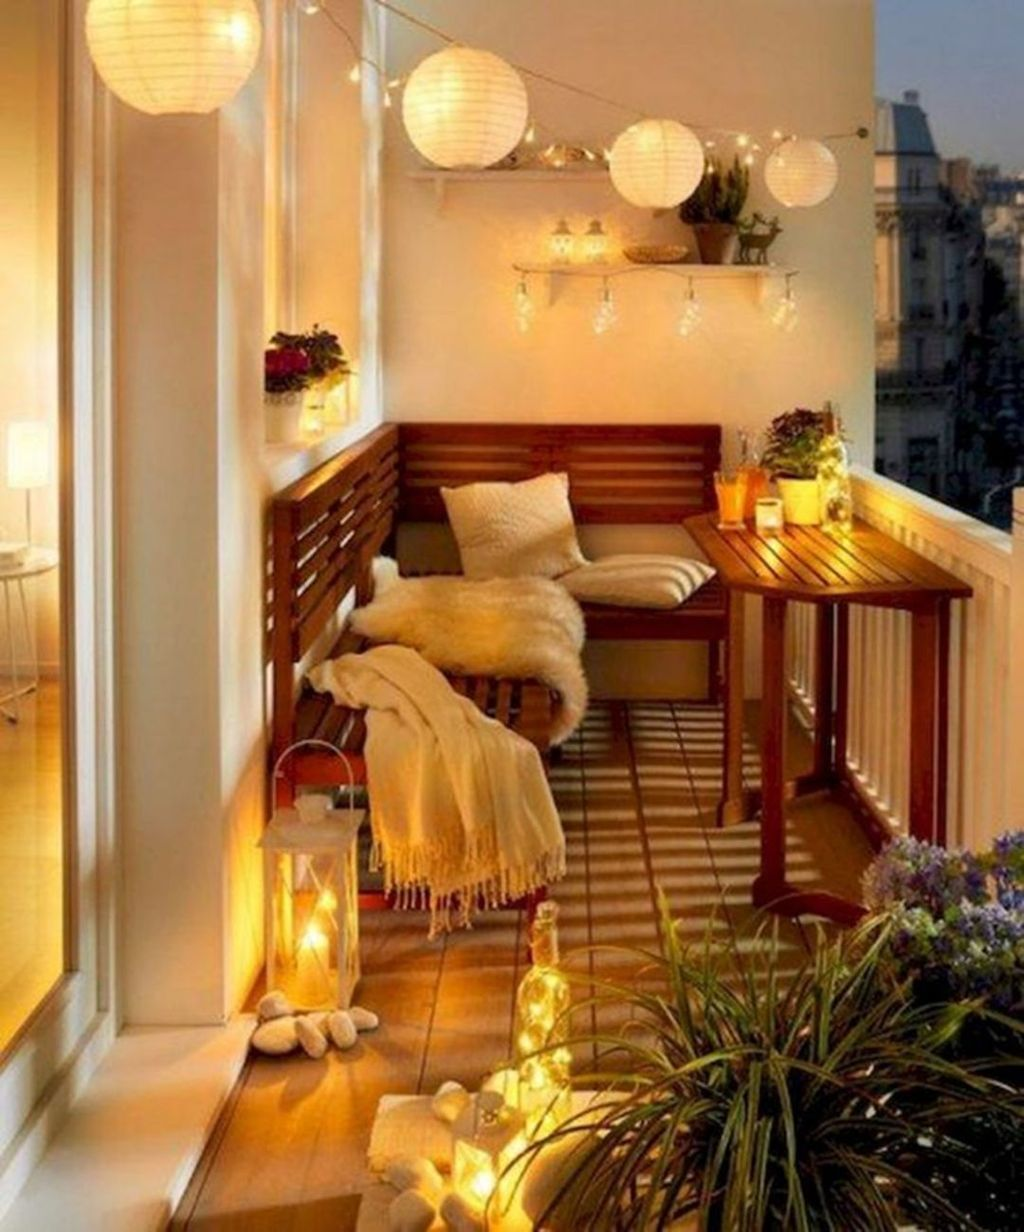 45 Awesome Small Balcony Ideas For Apartment #balconyideas